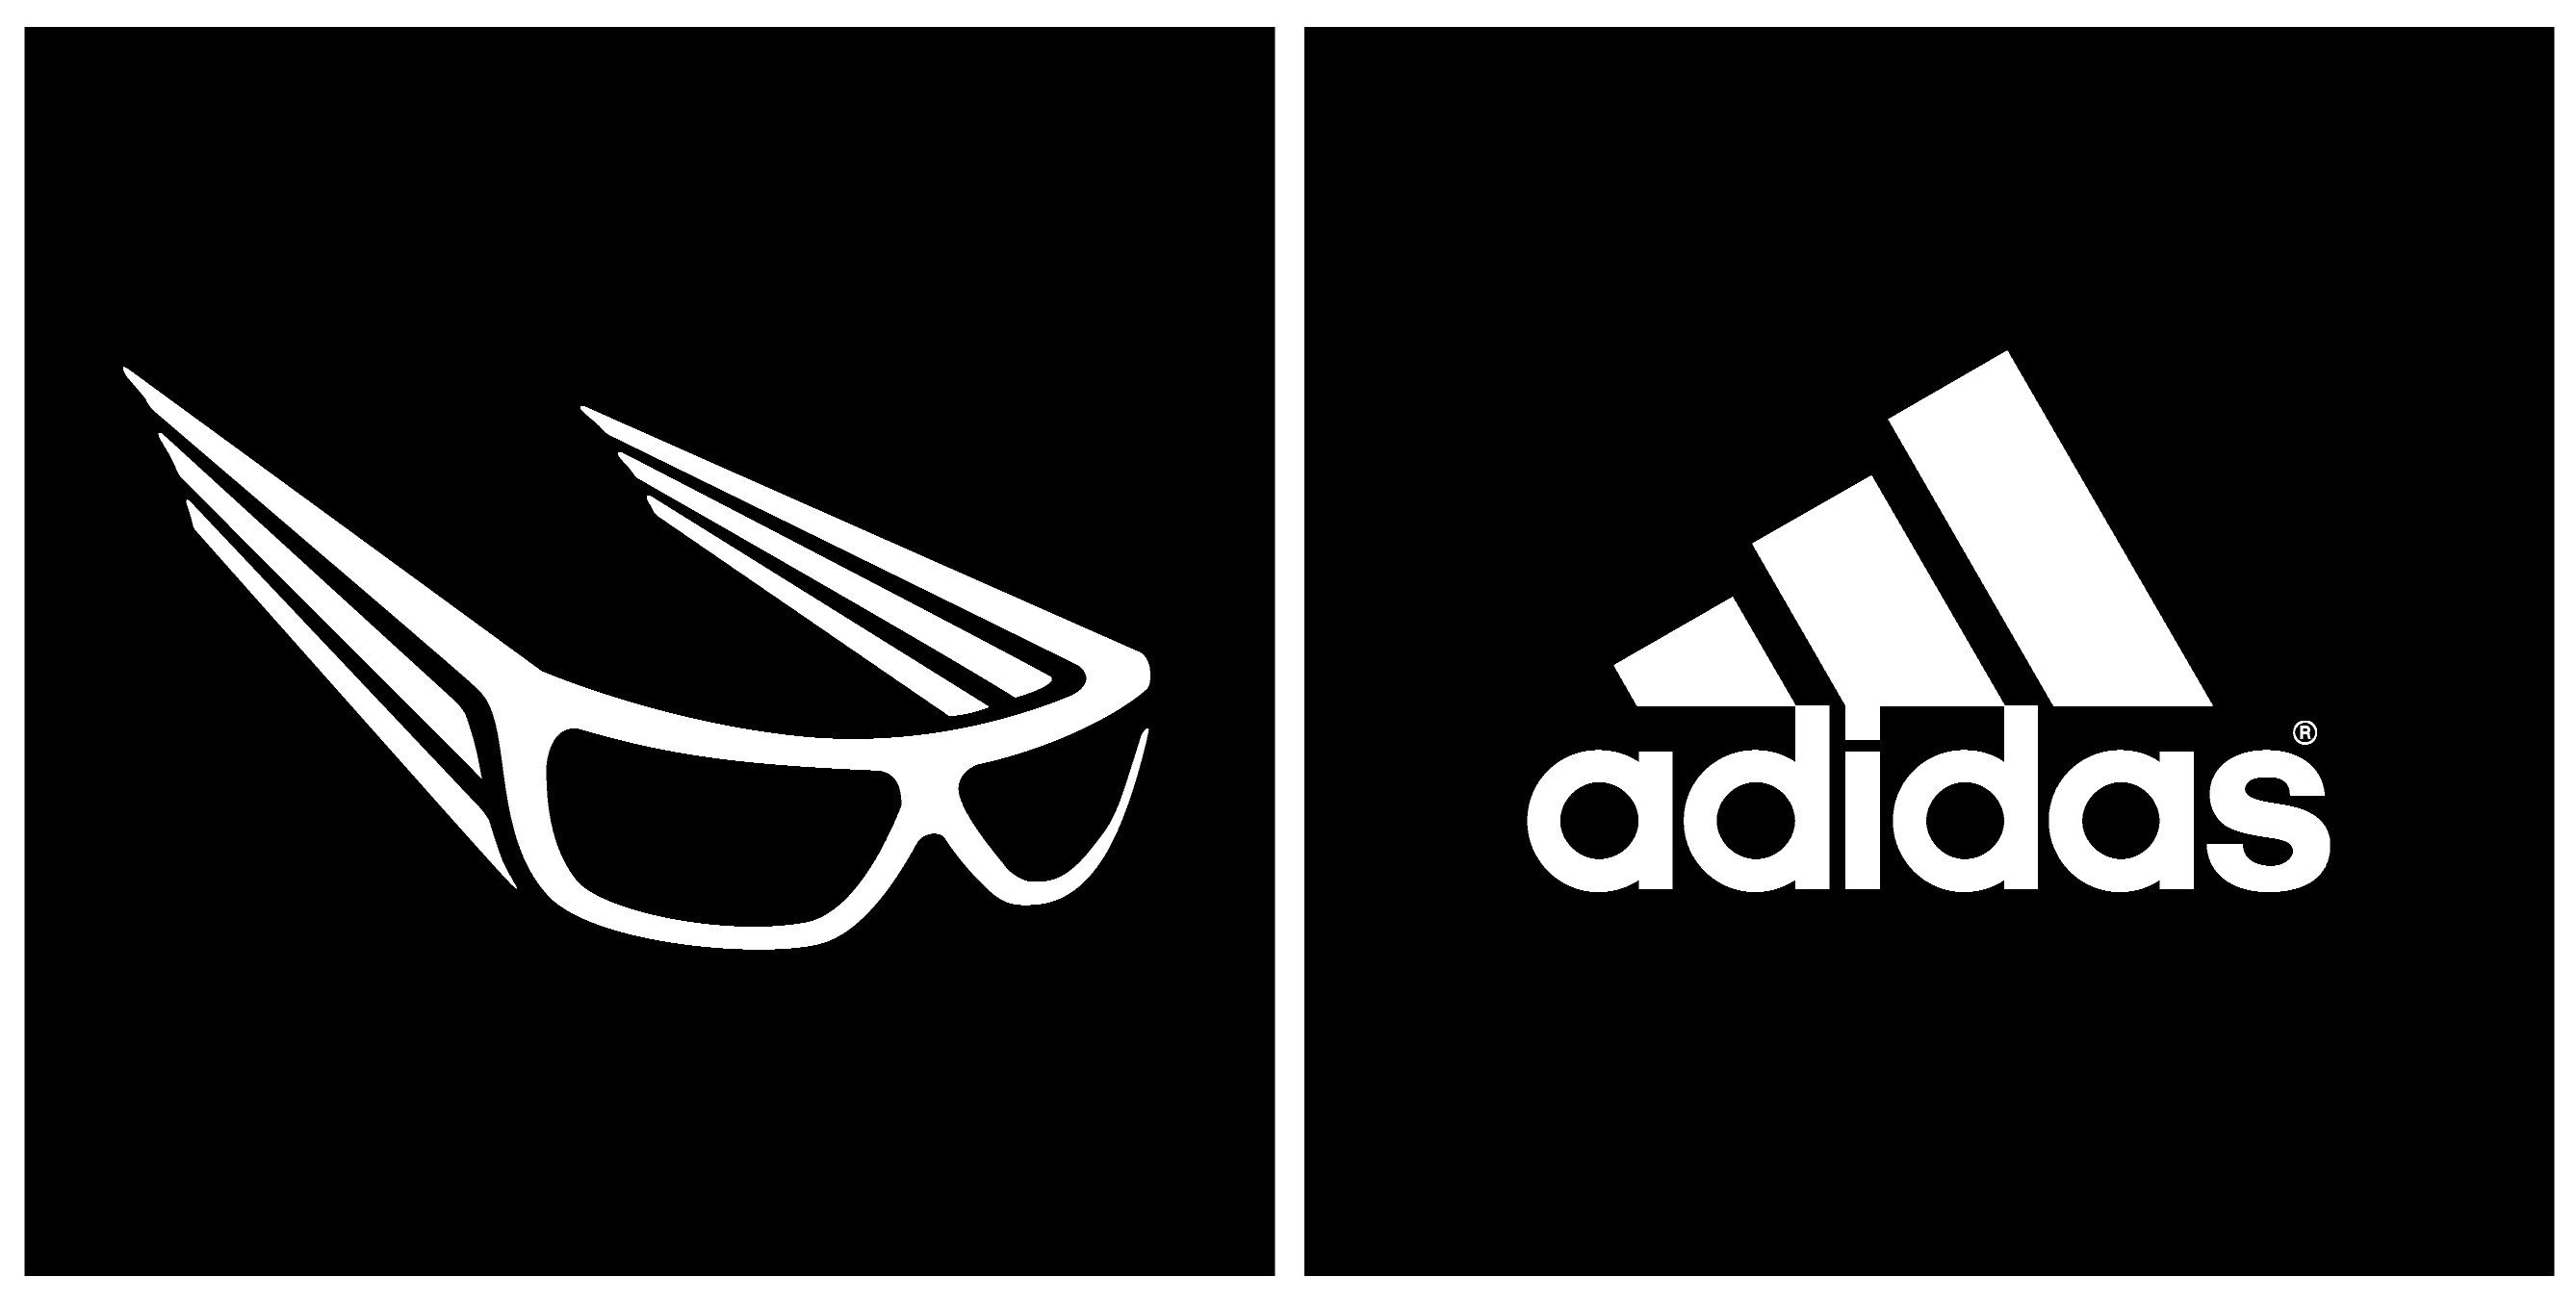 Spectacle Frames Ray Ban Pro Design Silhouette Adidas